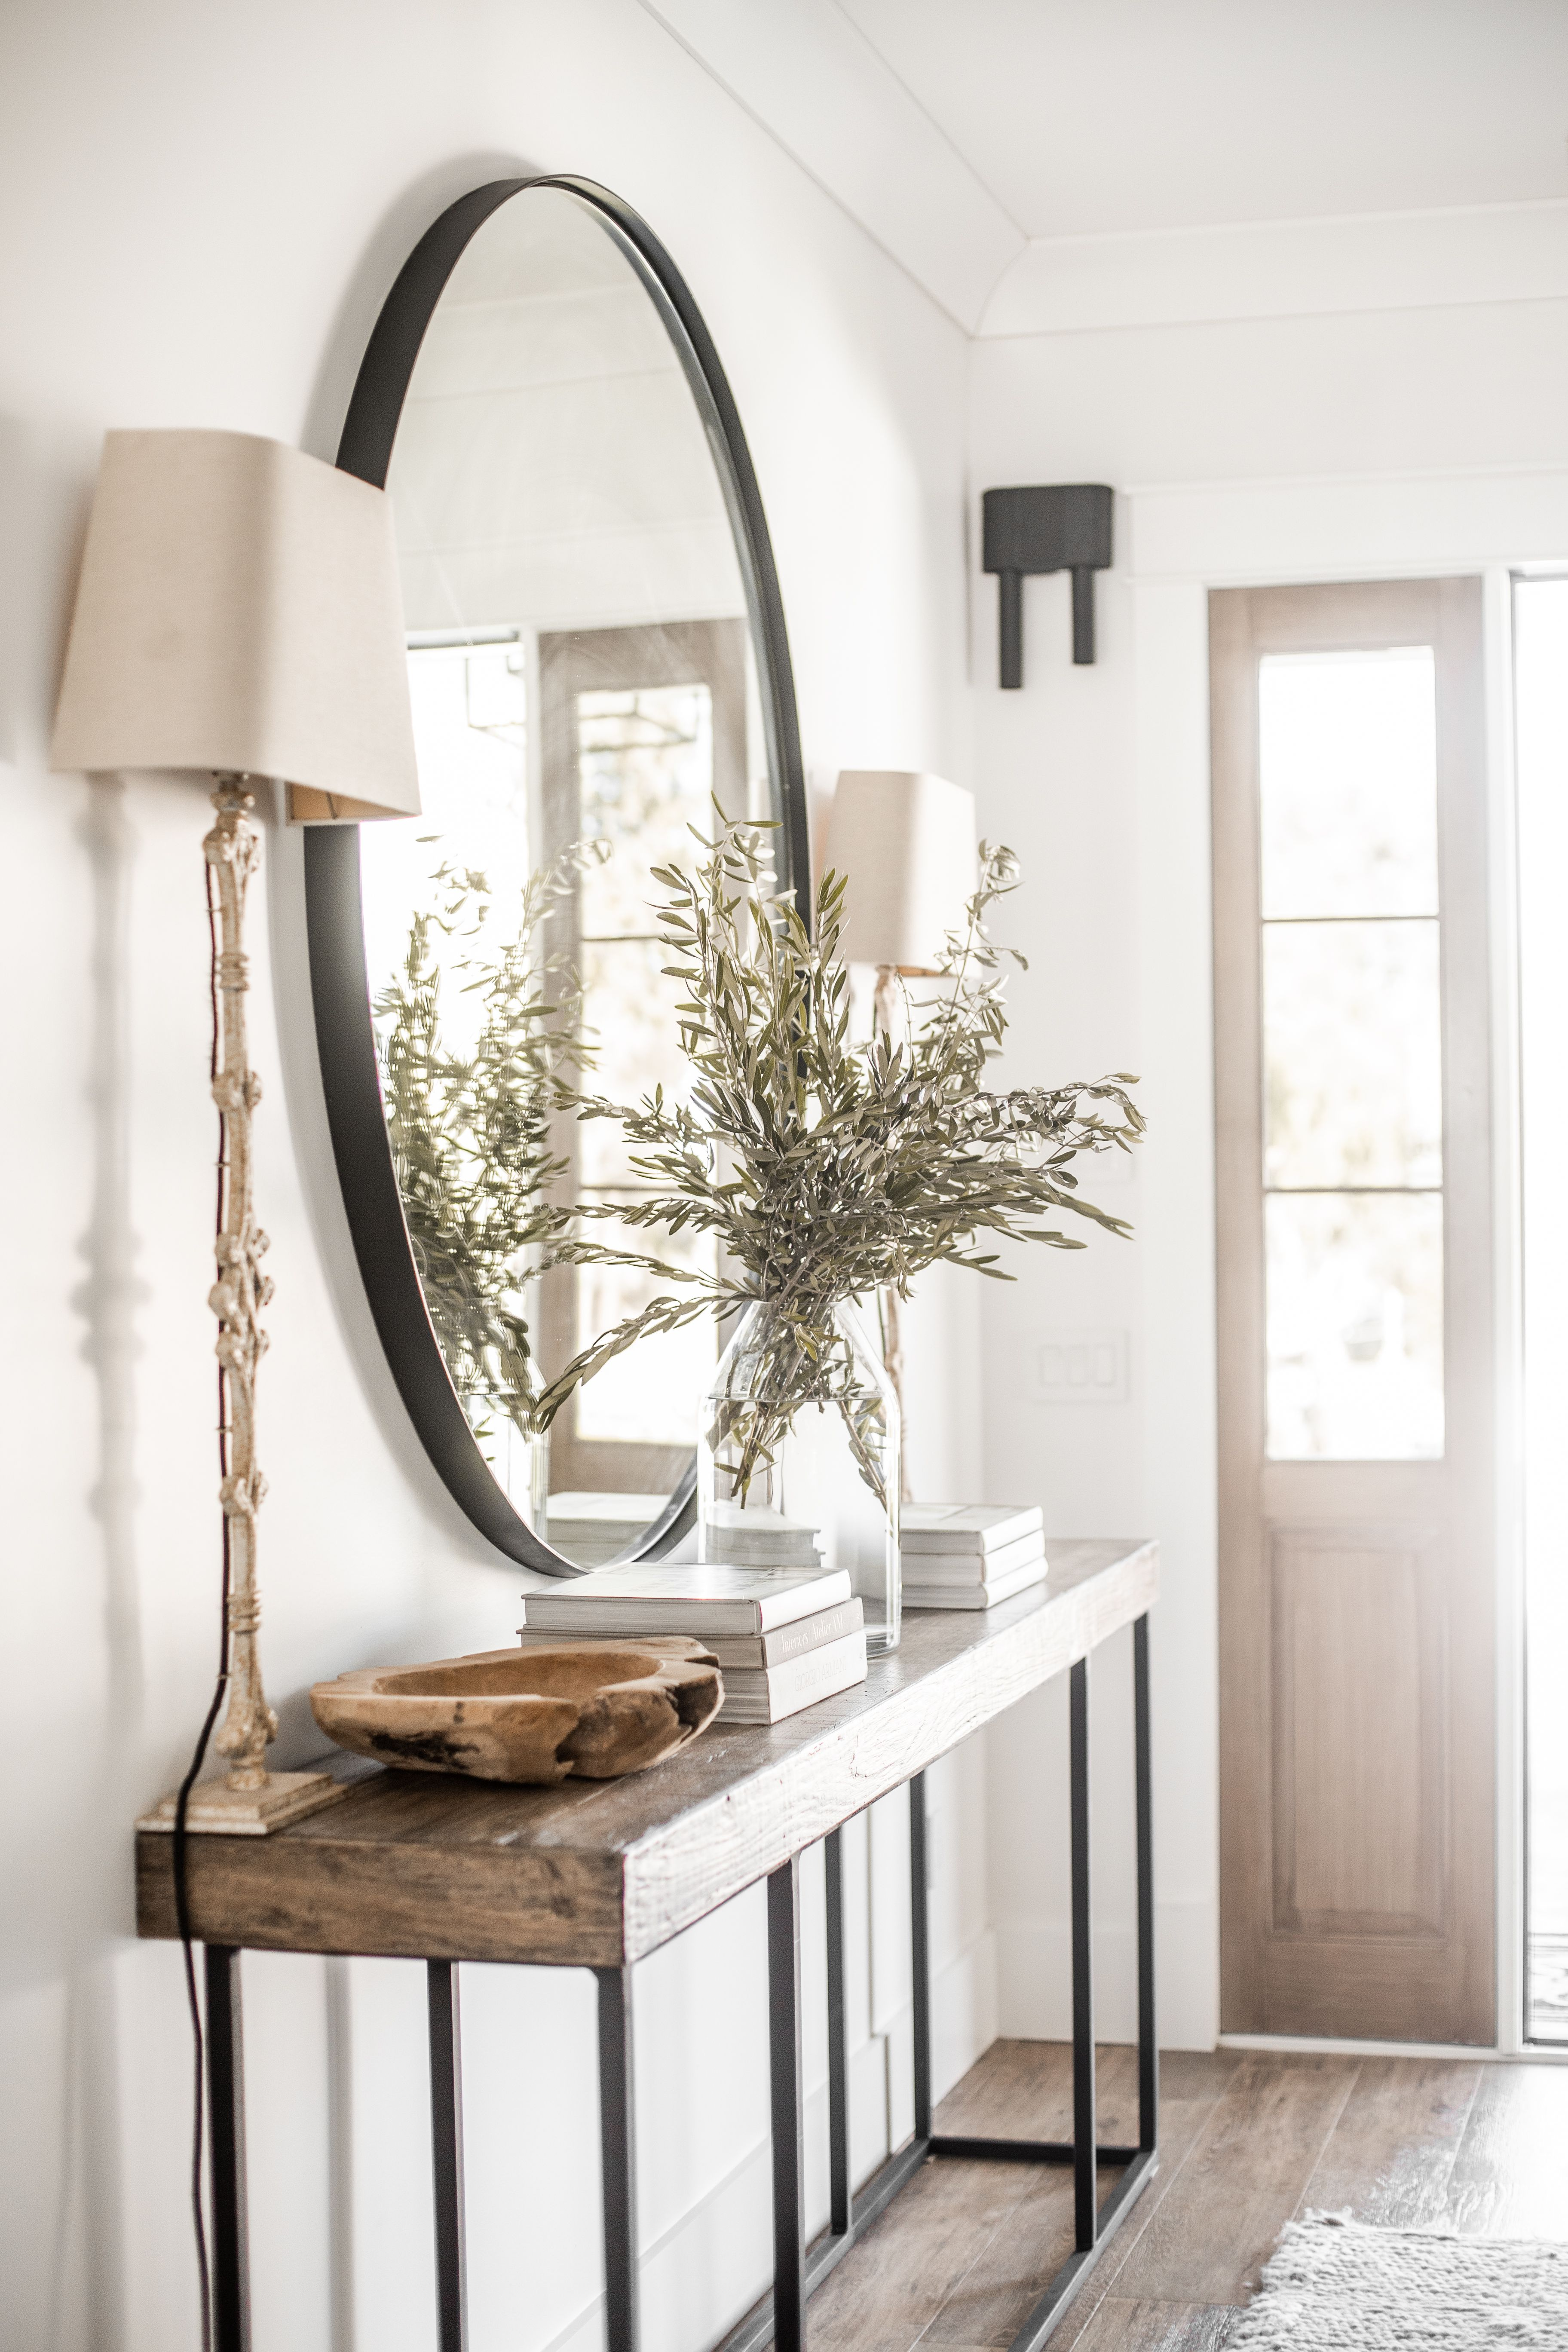 Our Entry Way Already Has This Modern Farmhouse Feel To It And We Wanted To Keep Things Very Simple And Clea Entryway Decor Small Entrance Decor House Interior